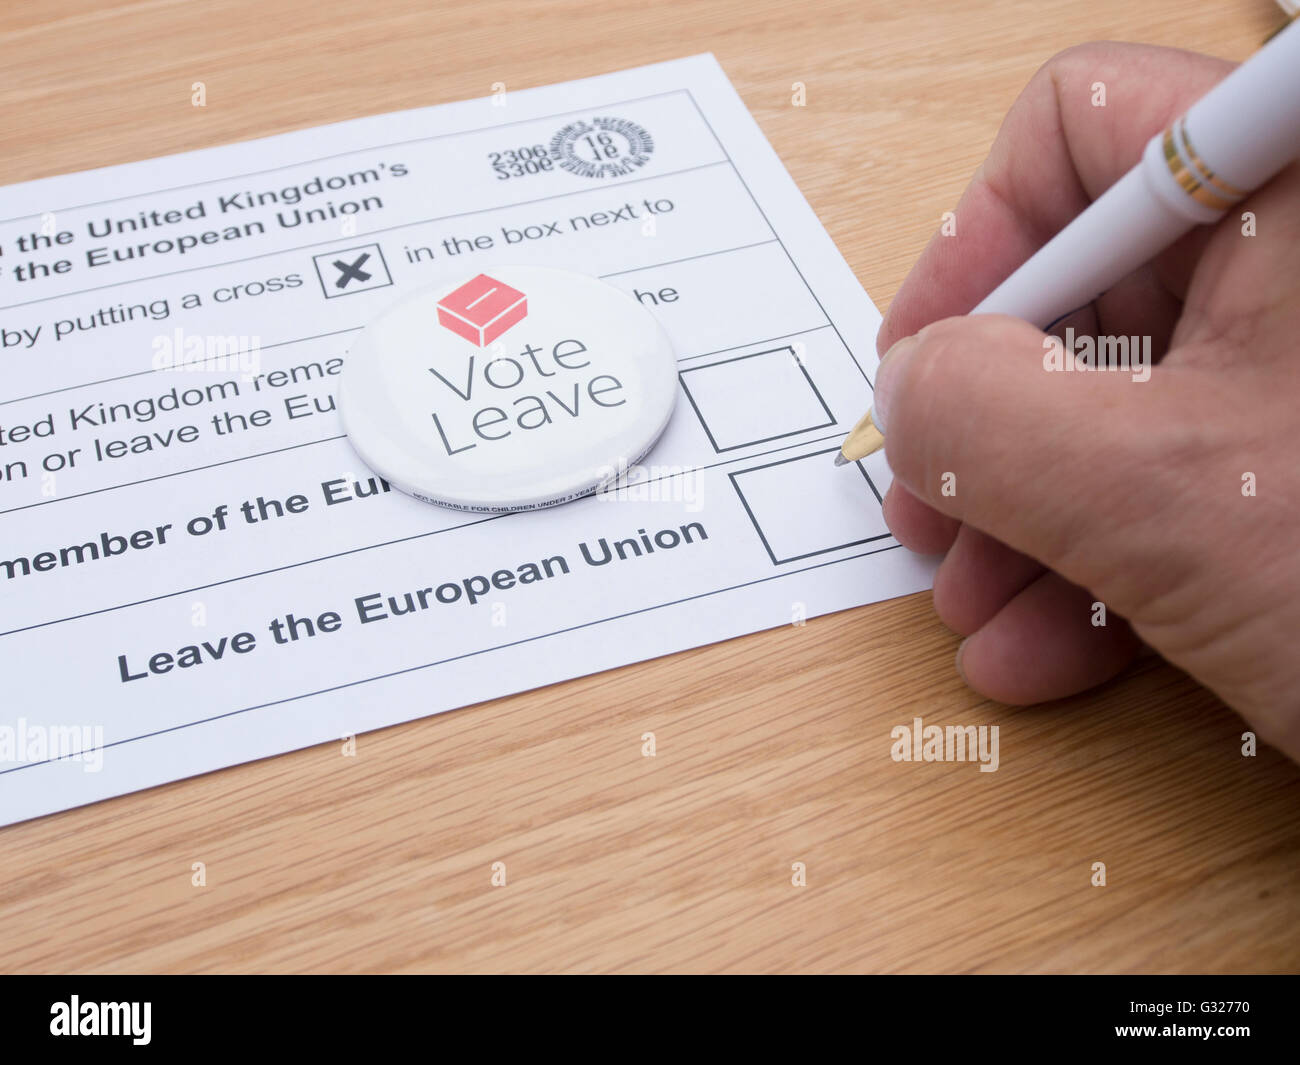 Exeter UK 7 June 2016 EU referendum voting by postal ballot with vote leave badge - Stock Image